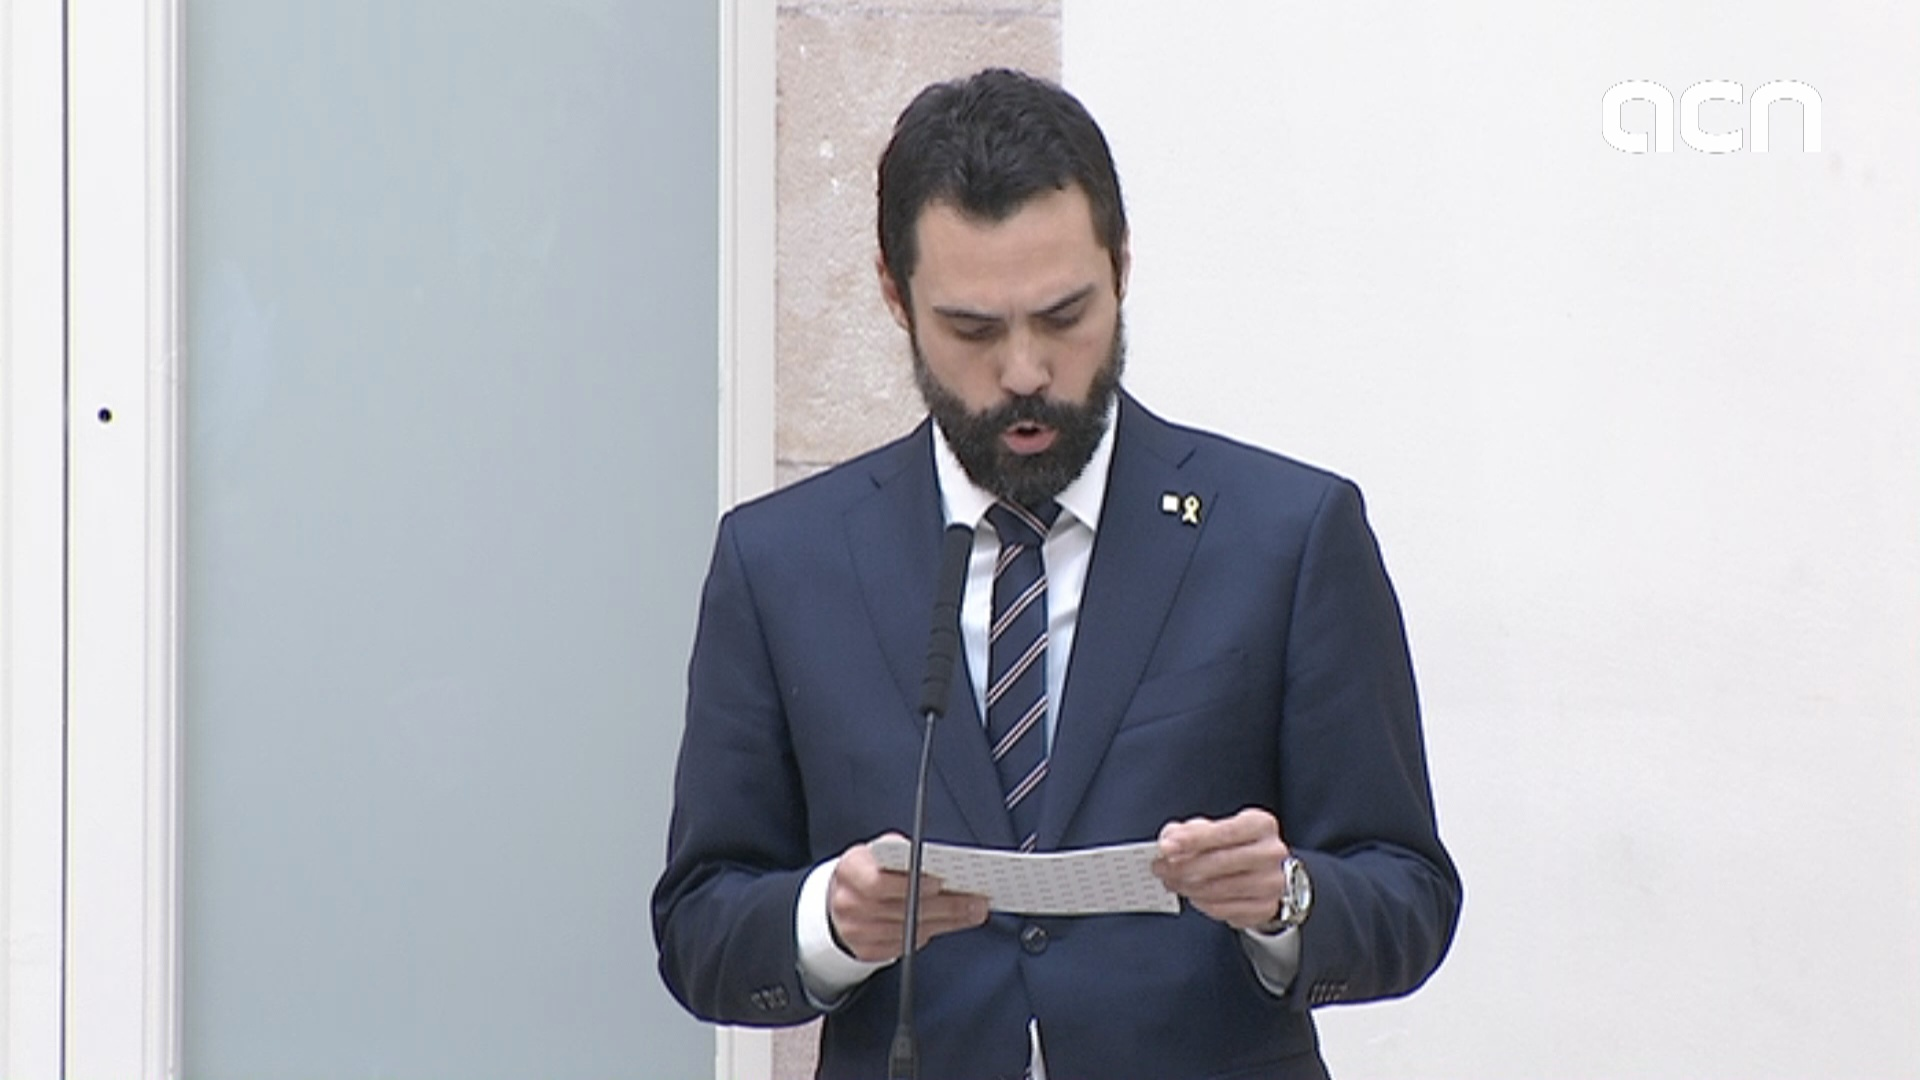 Roger Torrent condemns proposed sentences